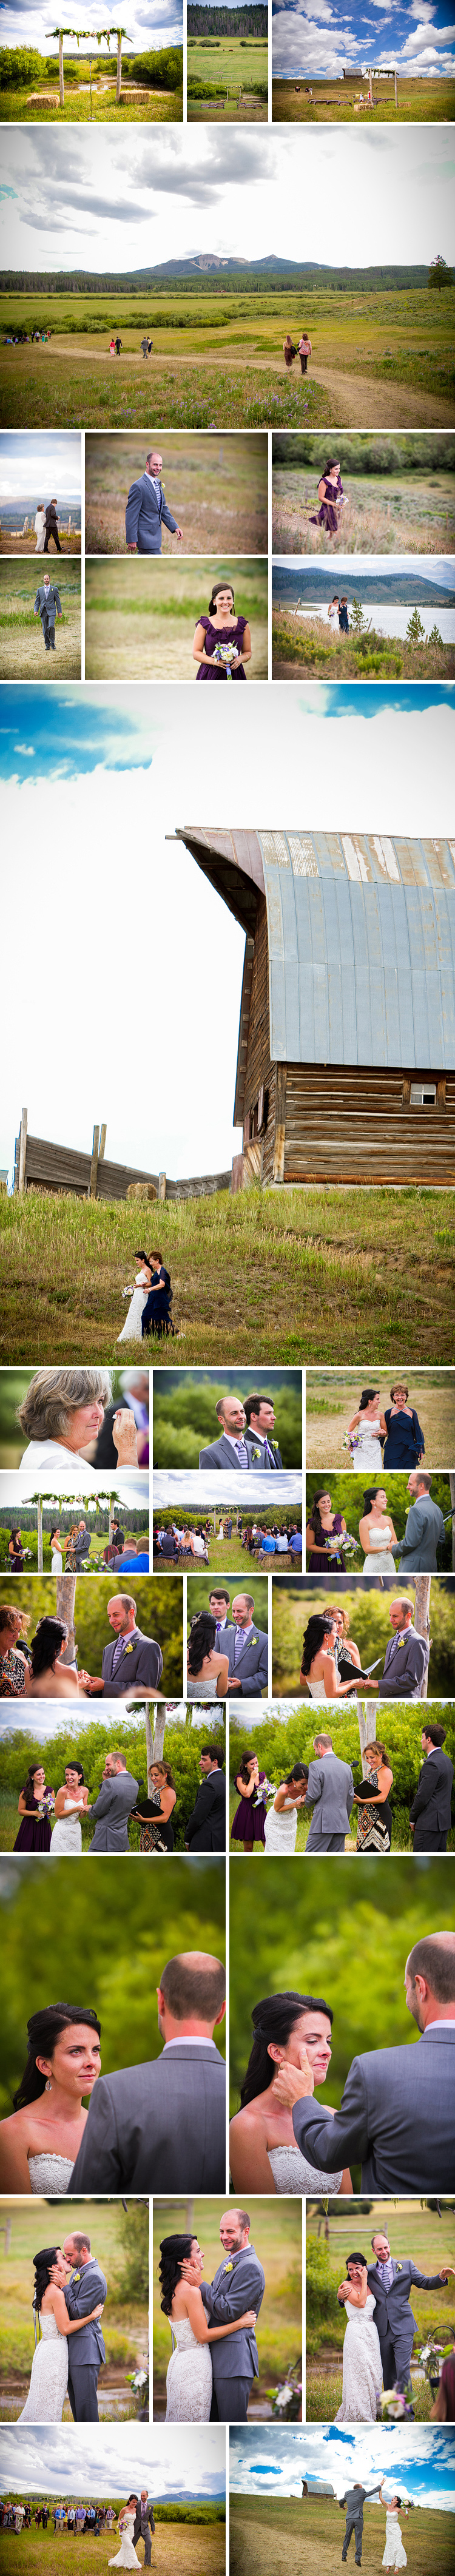 steamboat-springs-fetcher-barn-wedding02